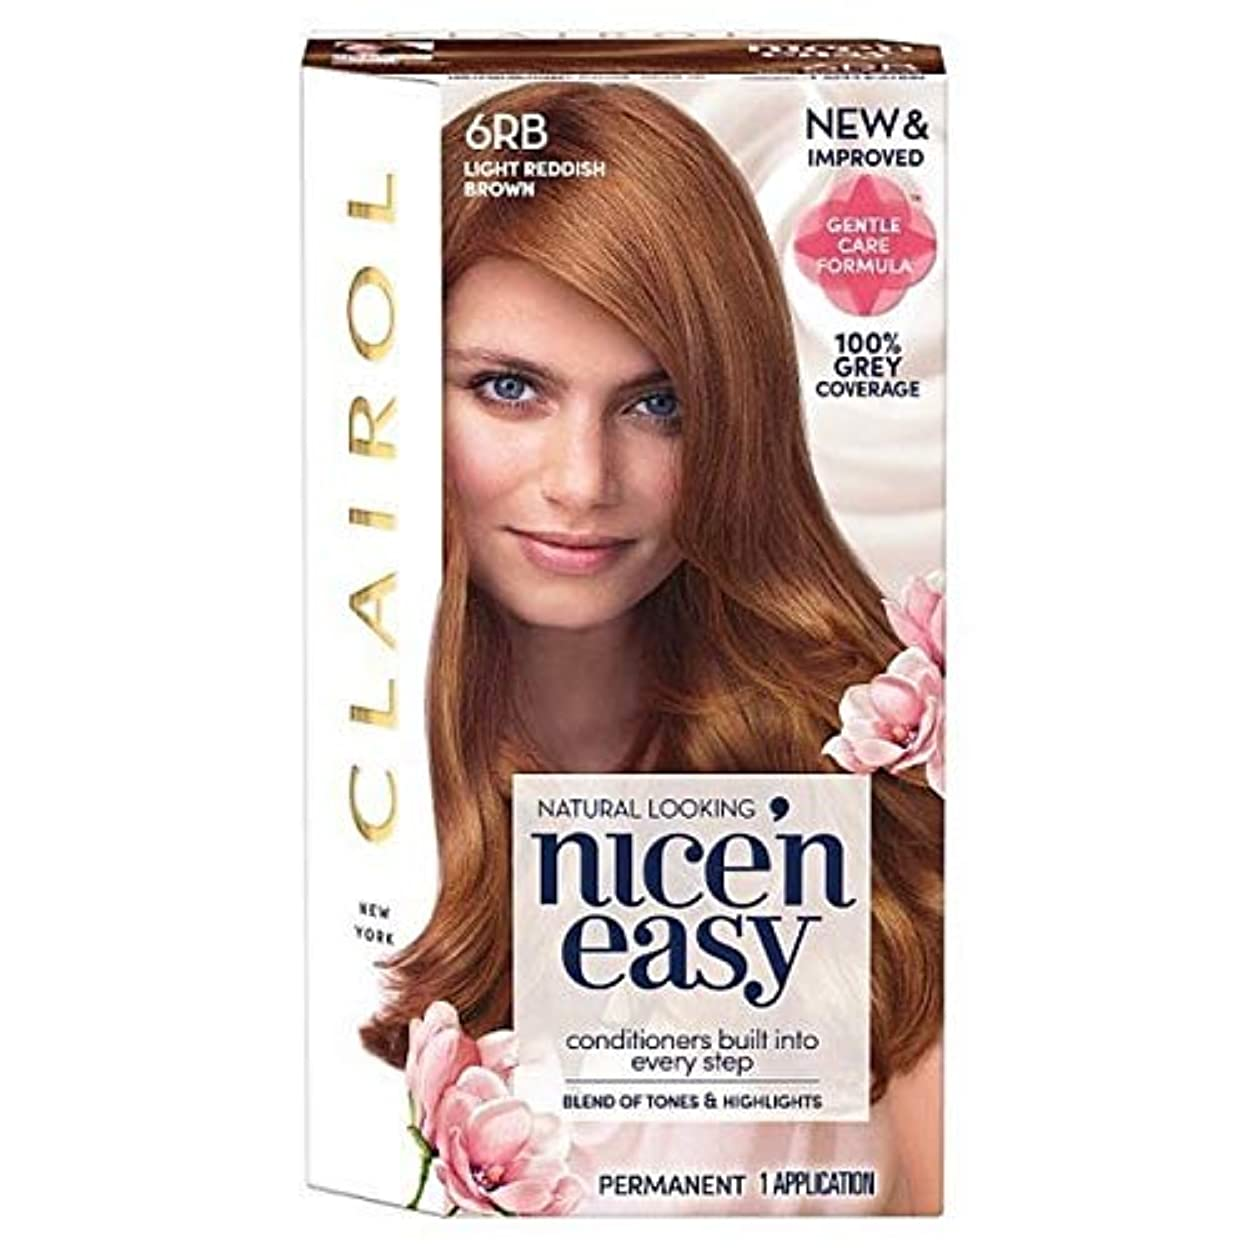 面千面[Nice'n Easy] 簡単6Rb光赤褐色Nice'N - Nice'n Easy 6Rb Light Reddish Brown [並行輸入品]